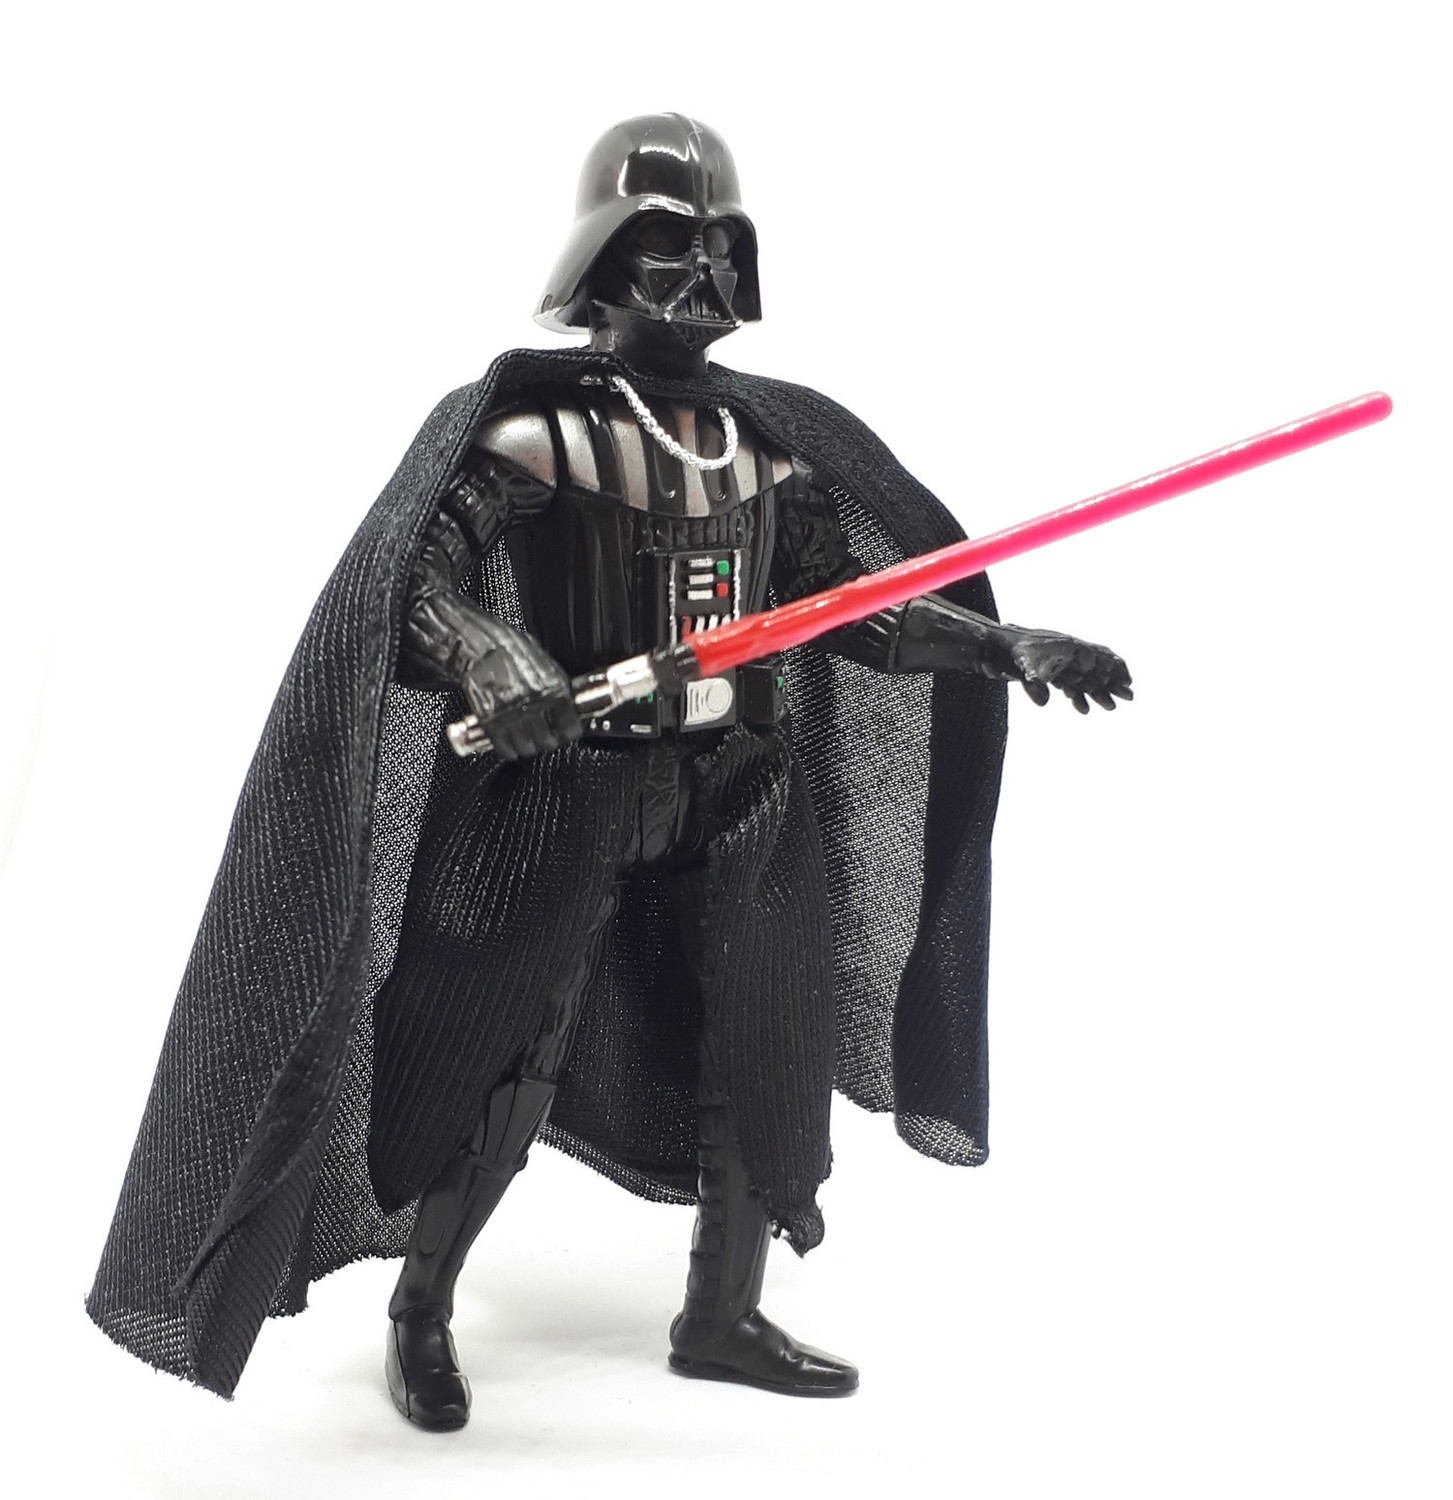 Darth Vader Lightsaber Attack Revenge Of The Sith Action Figure Iii 11